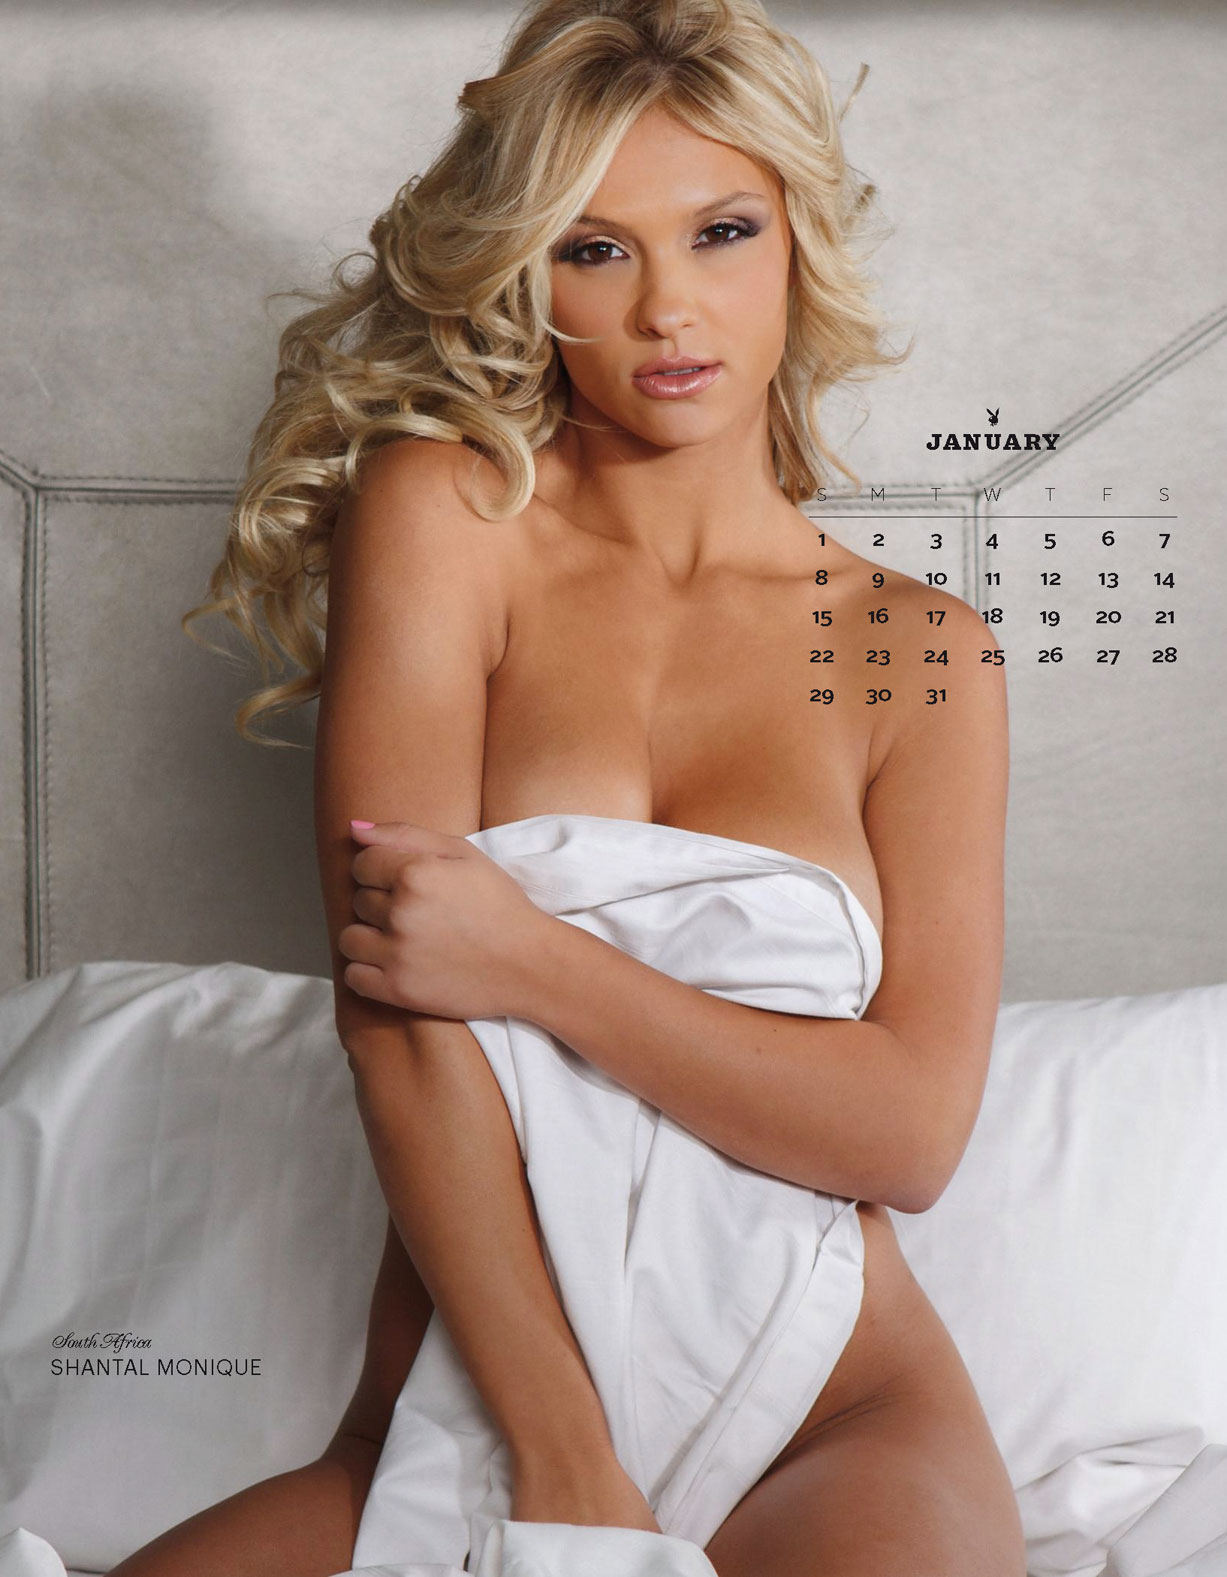 Playboy USA 2017 Official Calendar - Playmates Around the World - Shantal Monique | South Africa